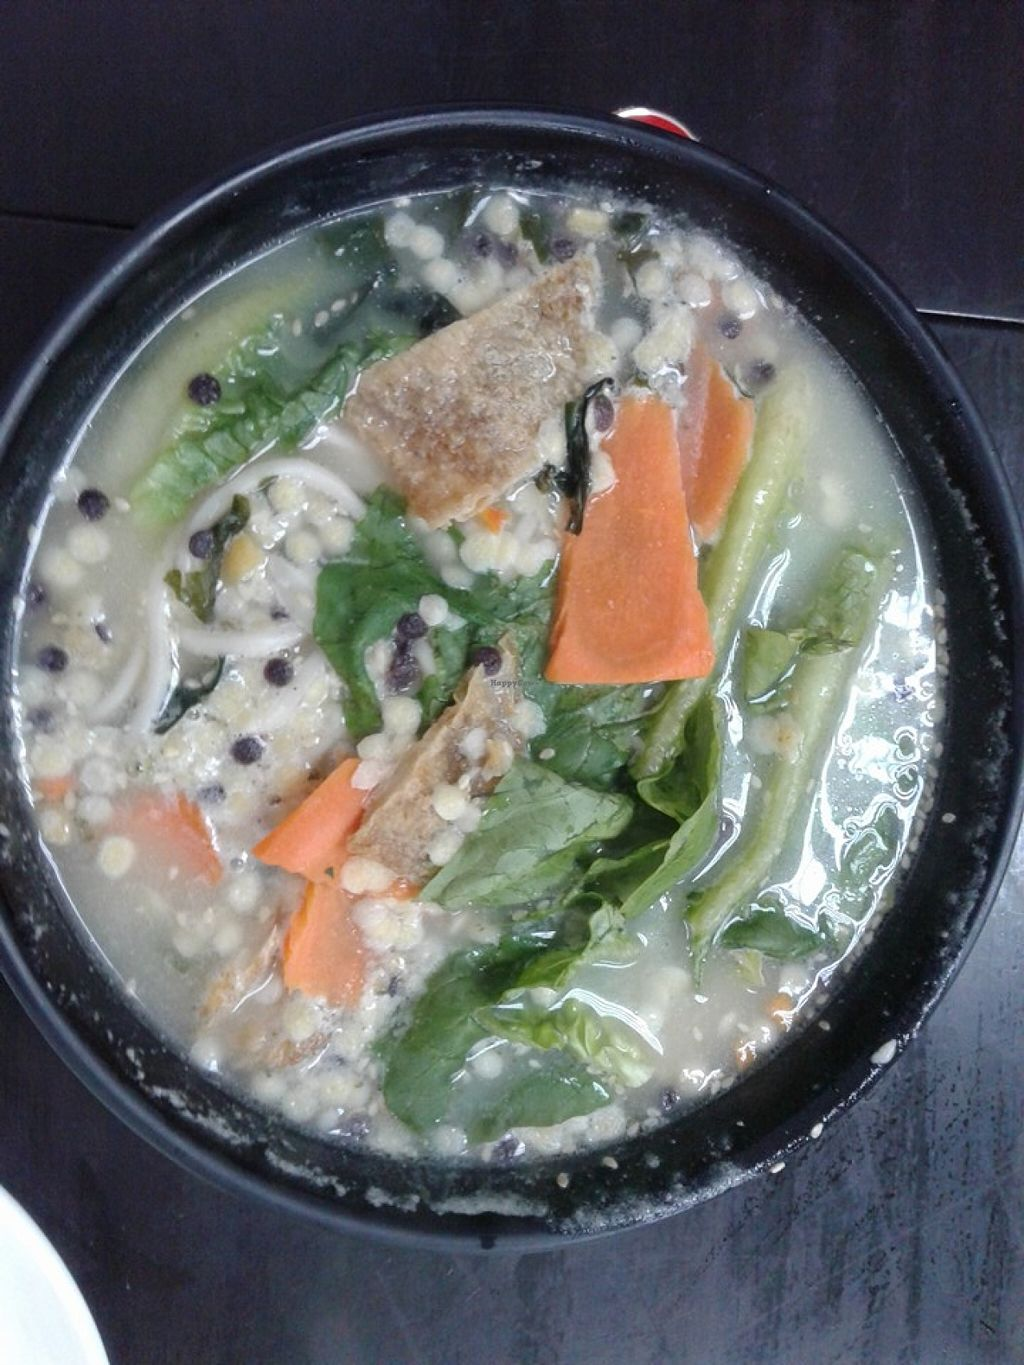 """Photo of Vege Restaurant Tong Hoe    by <a href=""""/members/profile/sfalee"""">sfalee</a> <br/>山藥拉麵 Yam Noodle <br/> June 21, 2016  - <a href='/contact/abuse/image/46478/155258'>Report</a>"""